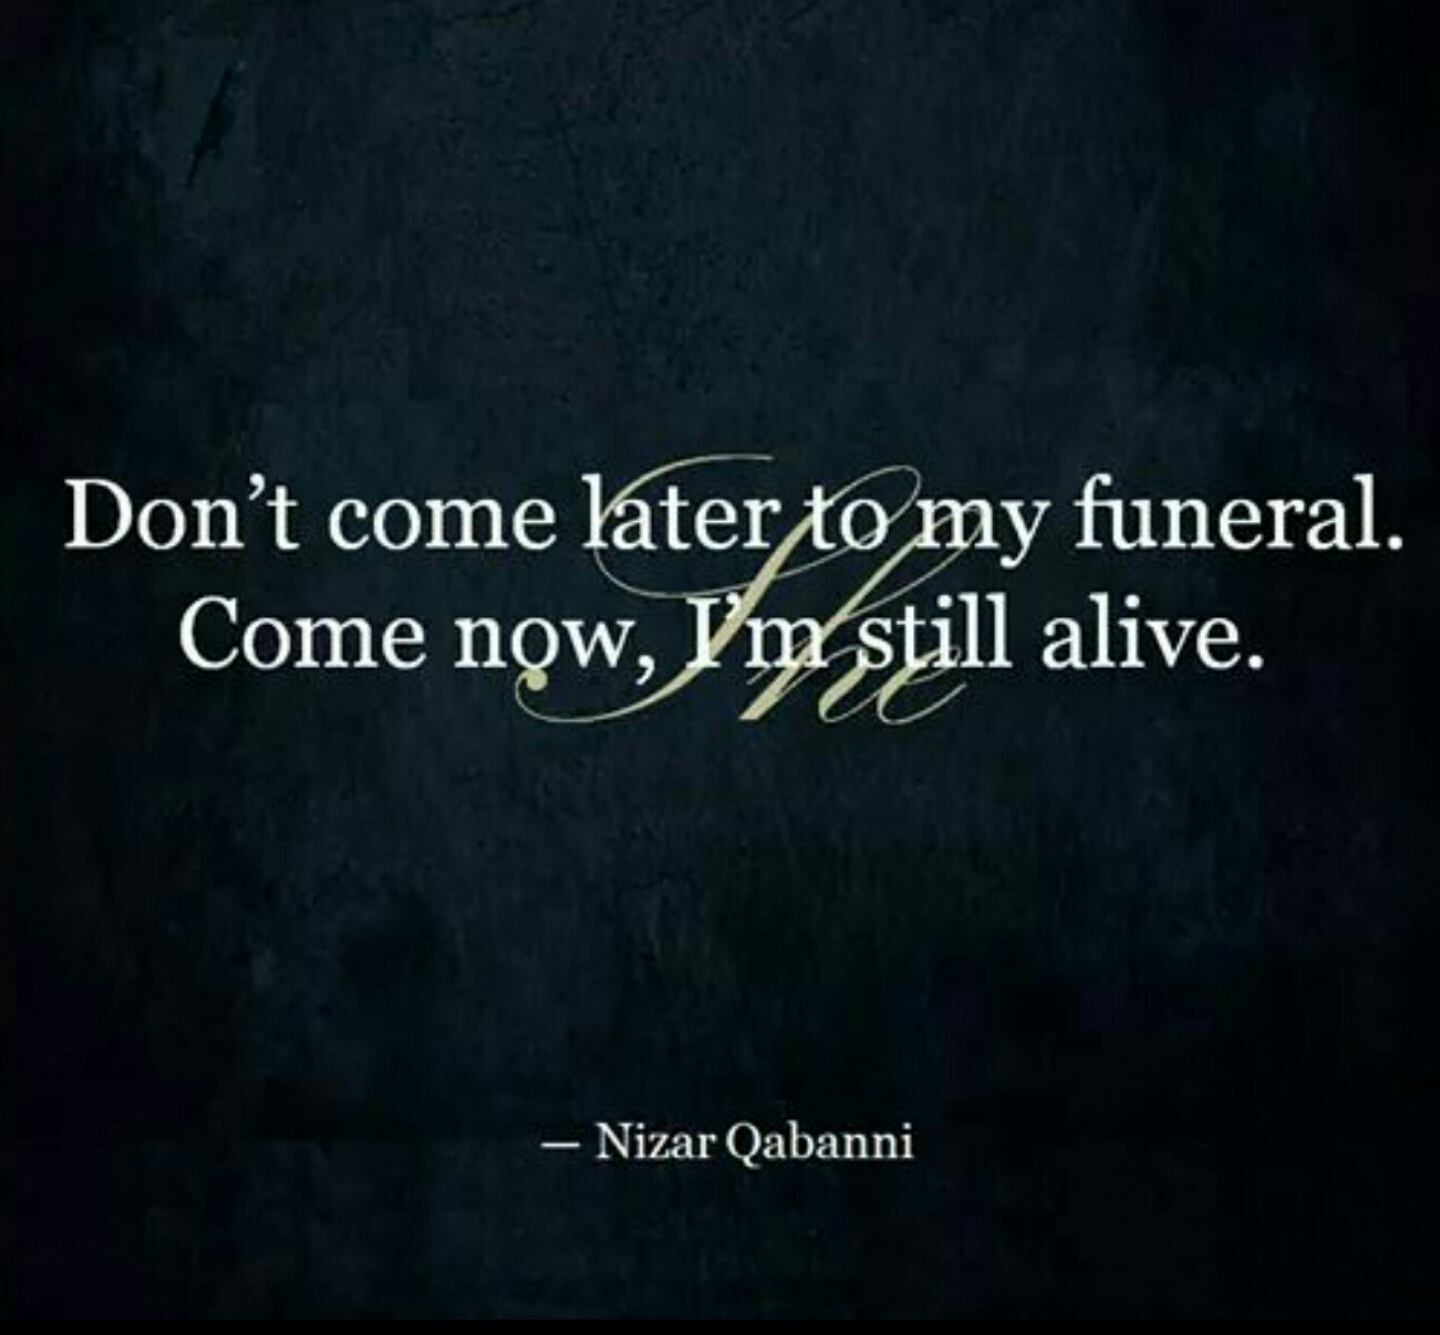 Quotes For Funerals Don't Come Later To My Funeralcome Now I 'm Still Alive.  8Wdee